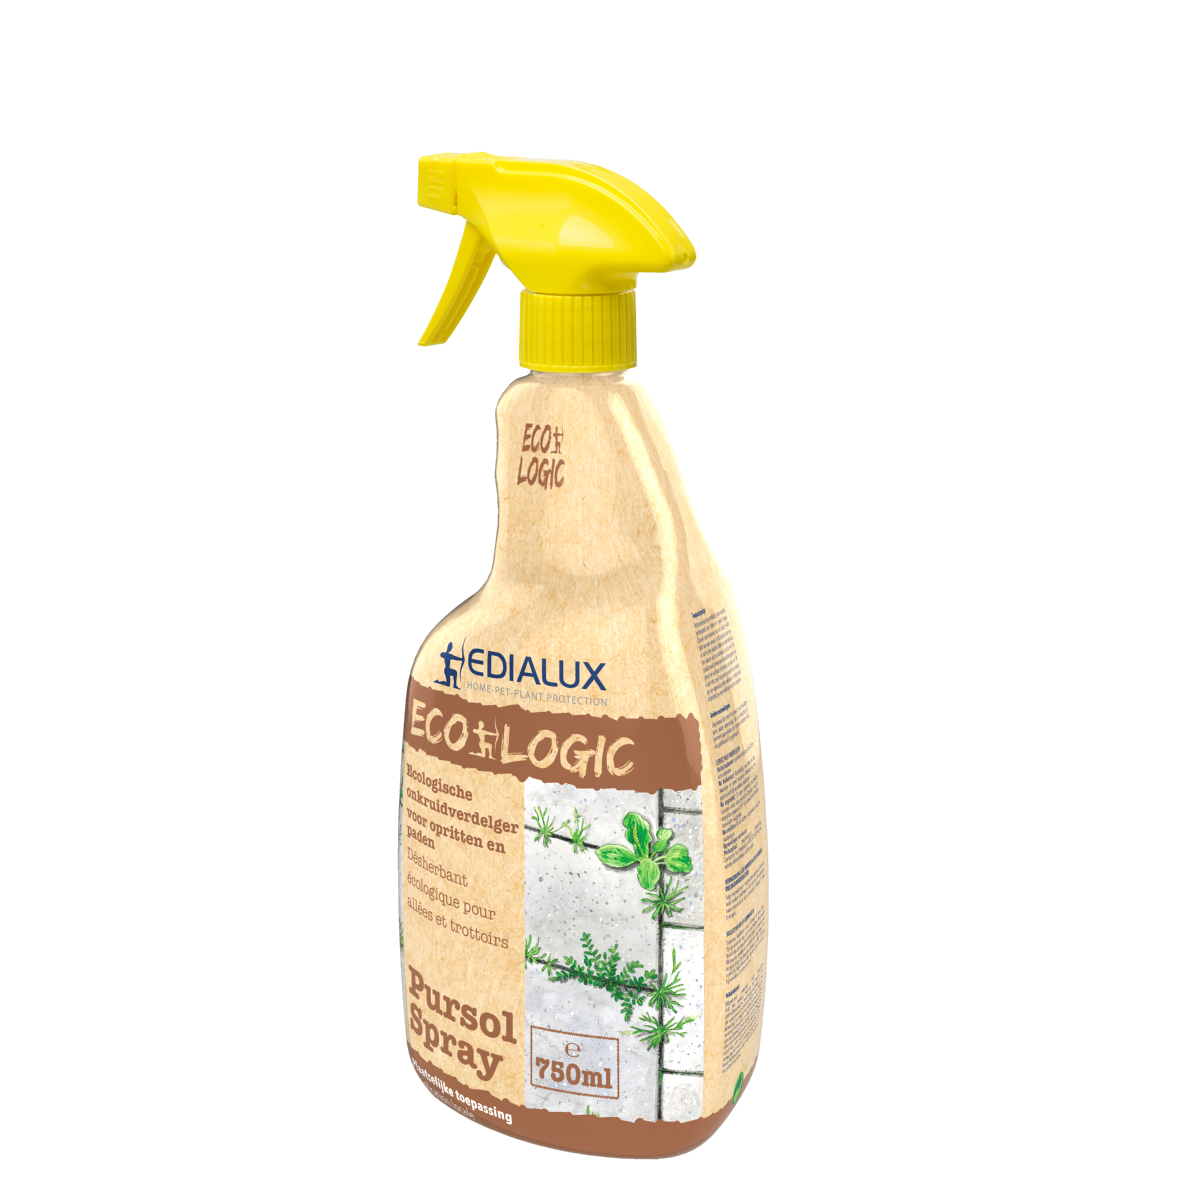 Pursol-Spray-750ml